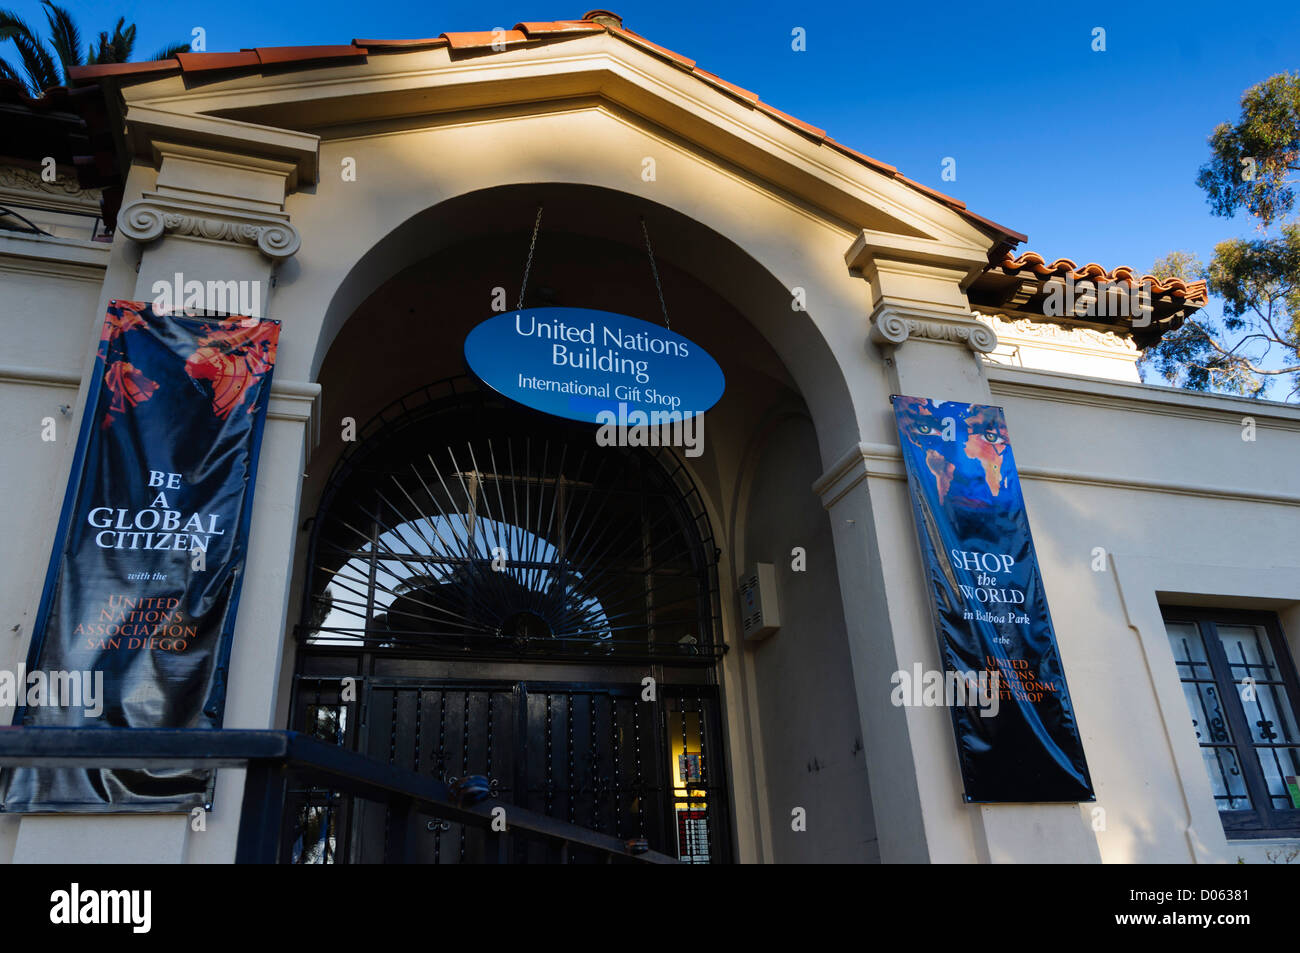 Balboa Park, San Diego, California - United Nations gift shop ...